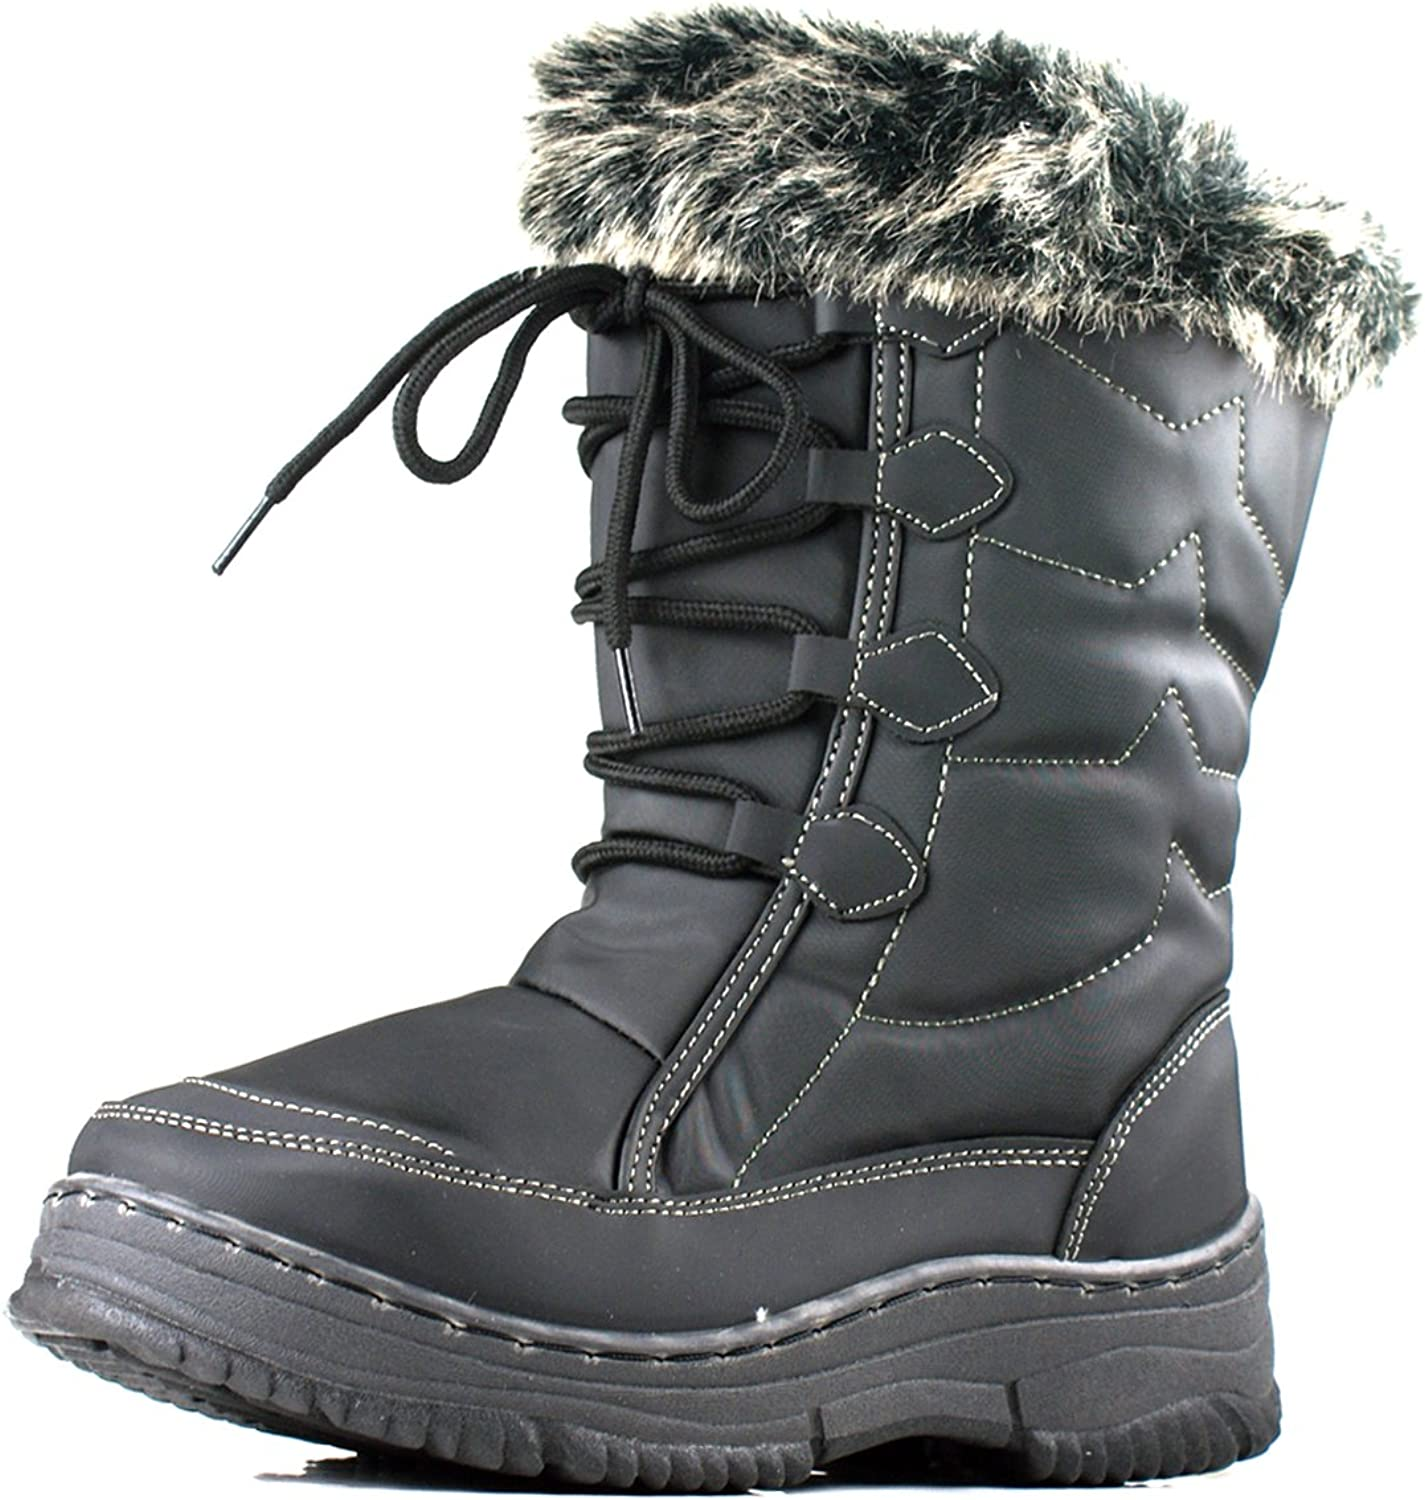 New Womens Winter Snow Boots Mid Calf Warm Rubber Wellies Flat Fashion Lace shoes Black